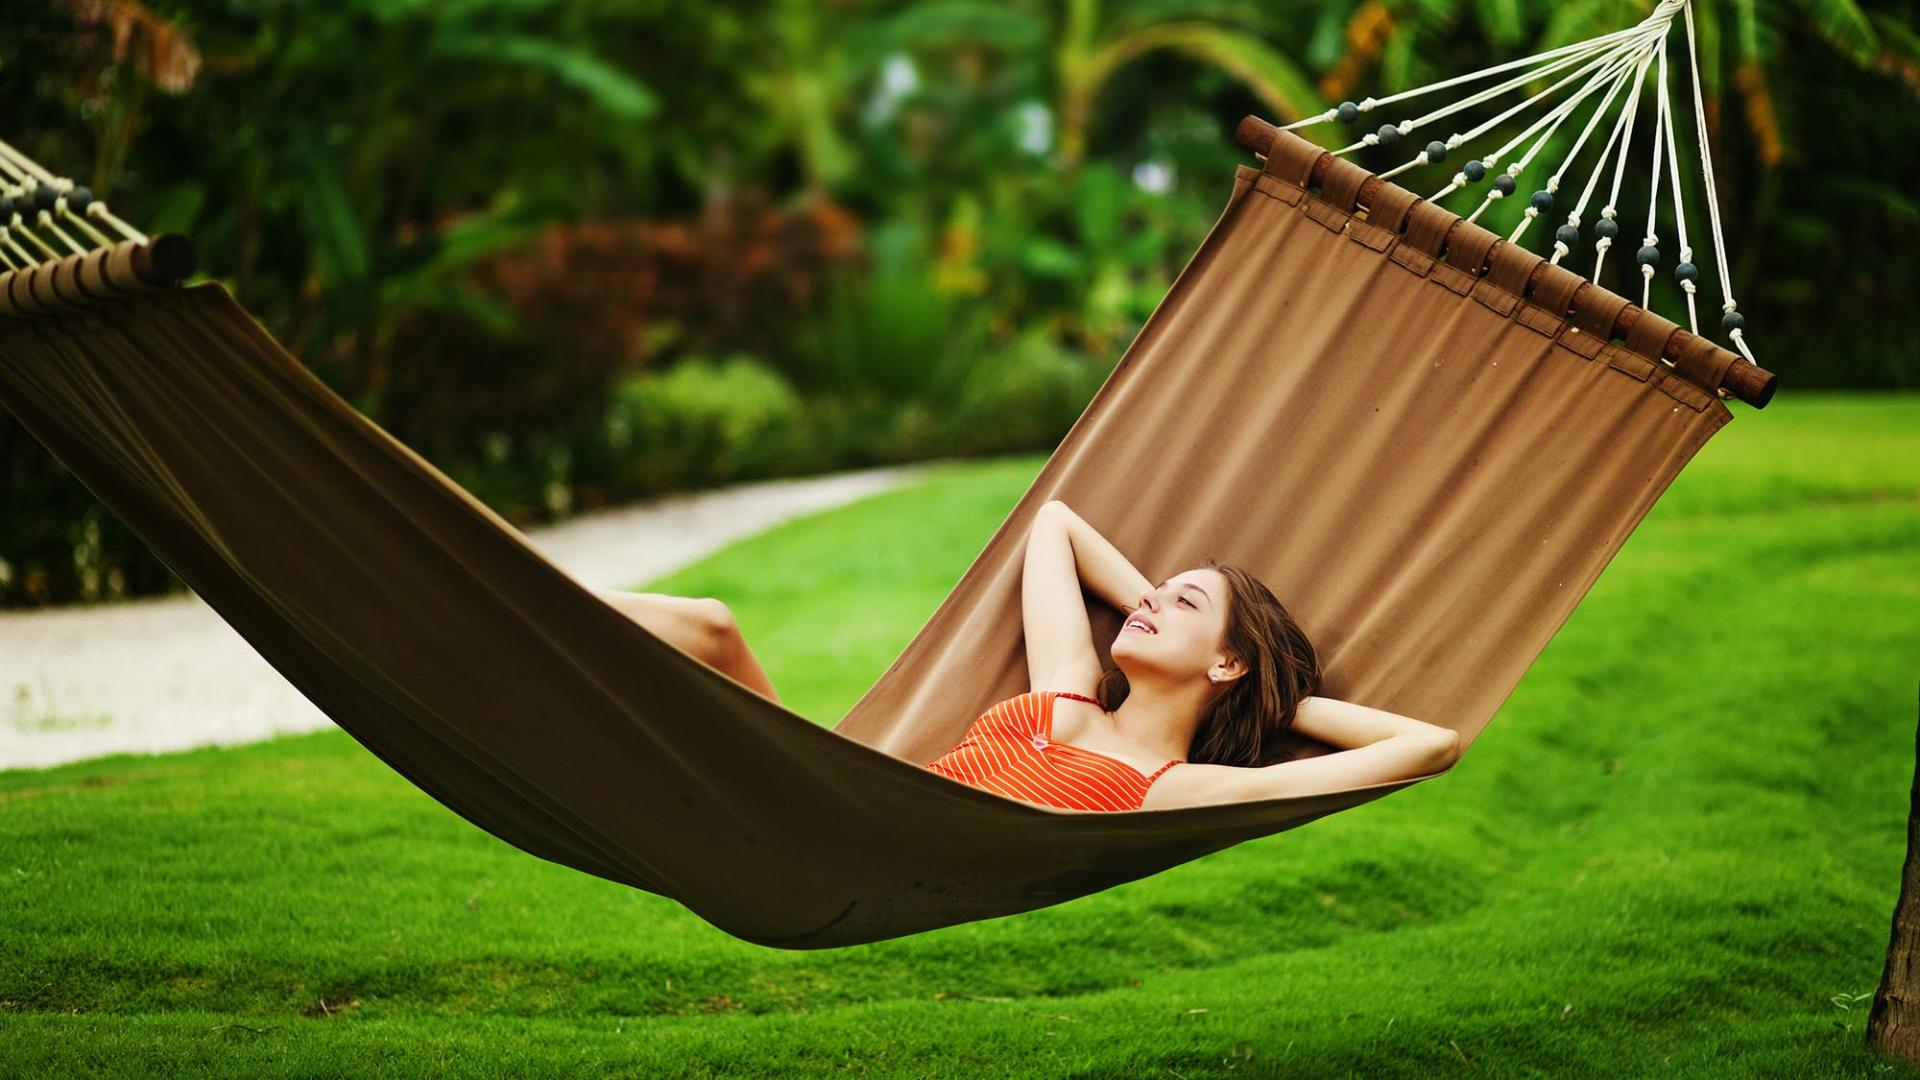 Young beautiful woman in hammock